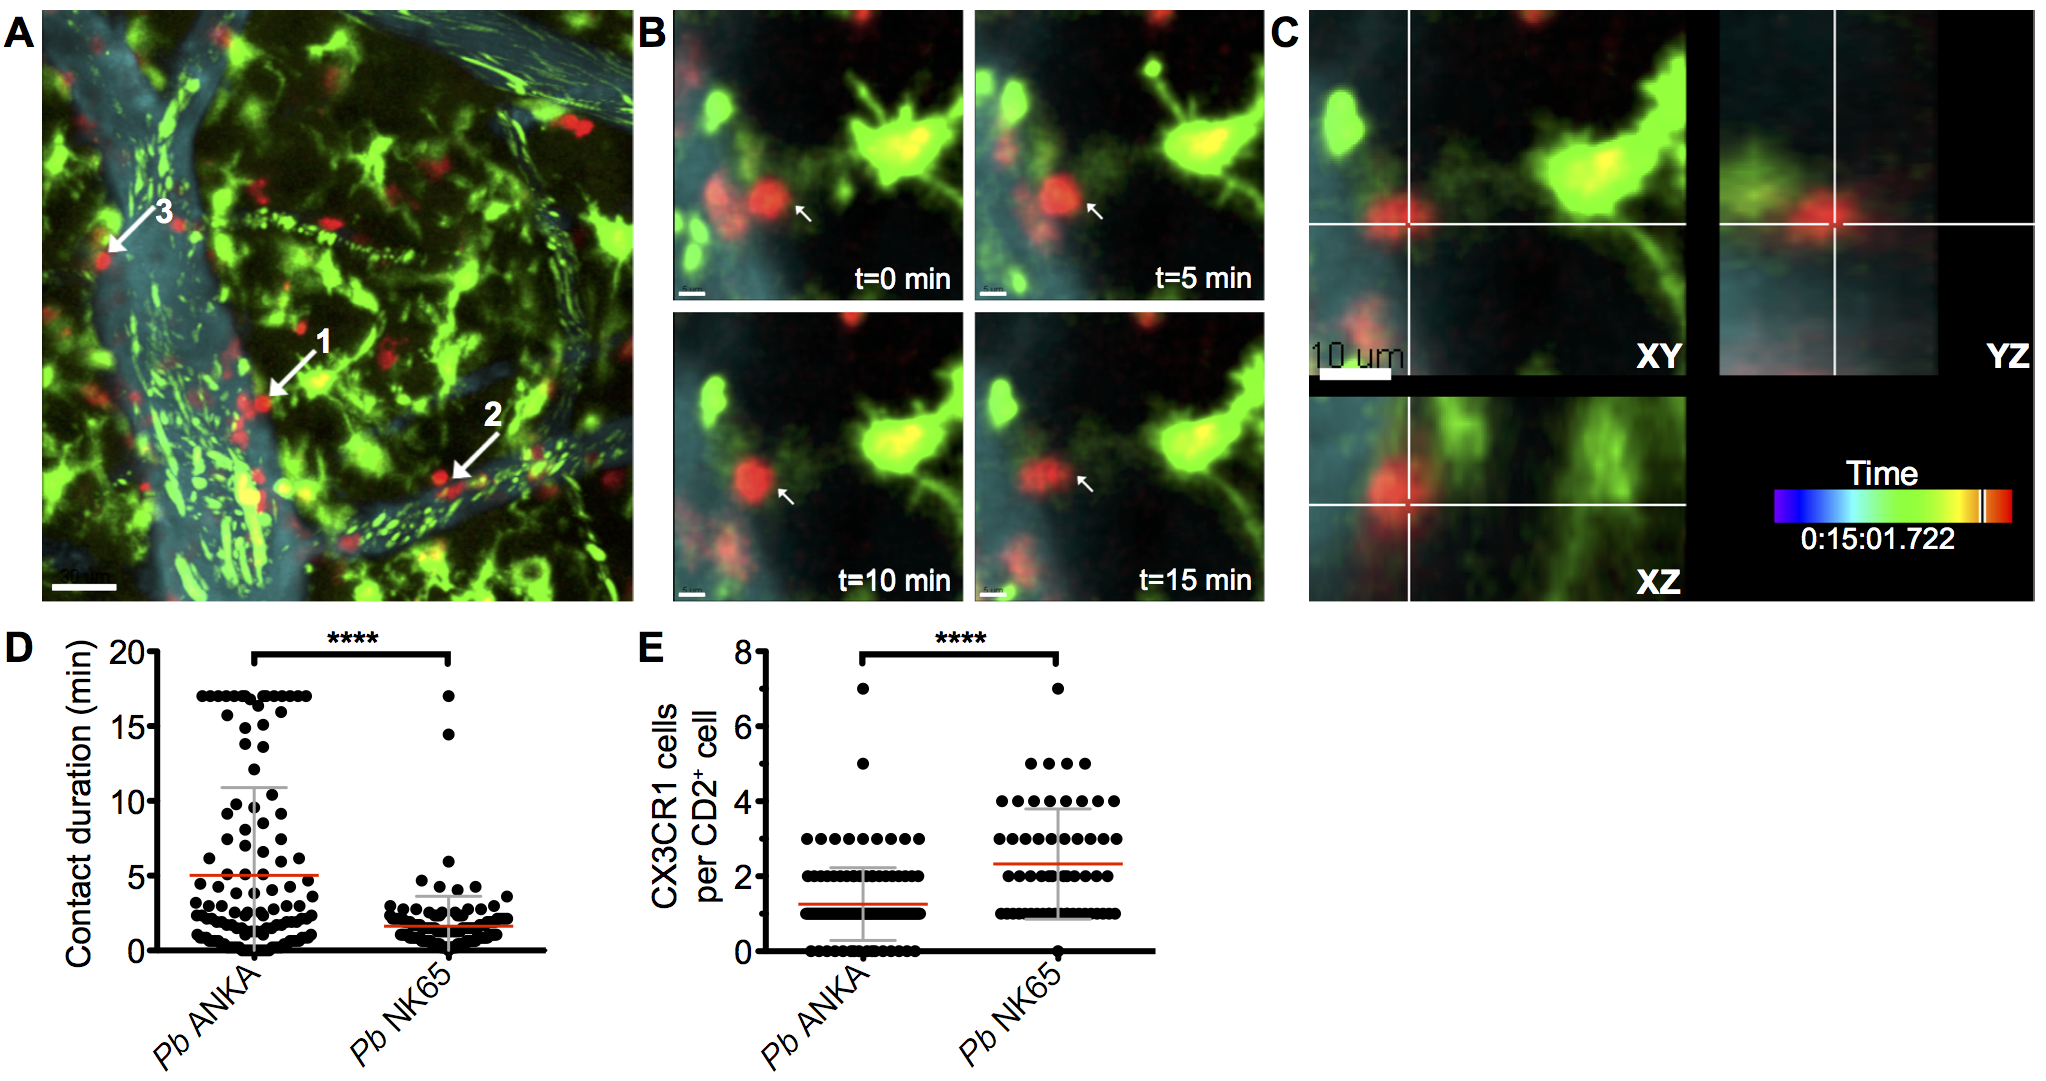 Perivascular T cells form long-lasting interactions with CX<sub>3</sub>CR1<sup>+/GFP</sup> in the brains of mice infected with <i>Pb</i> ANKA.